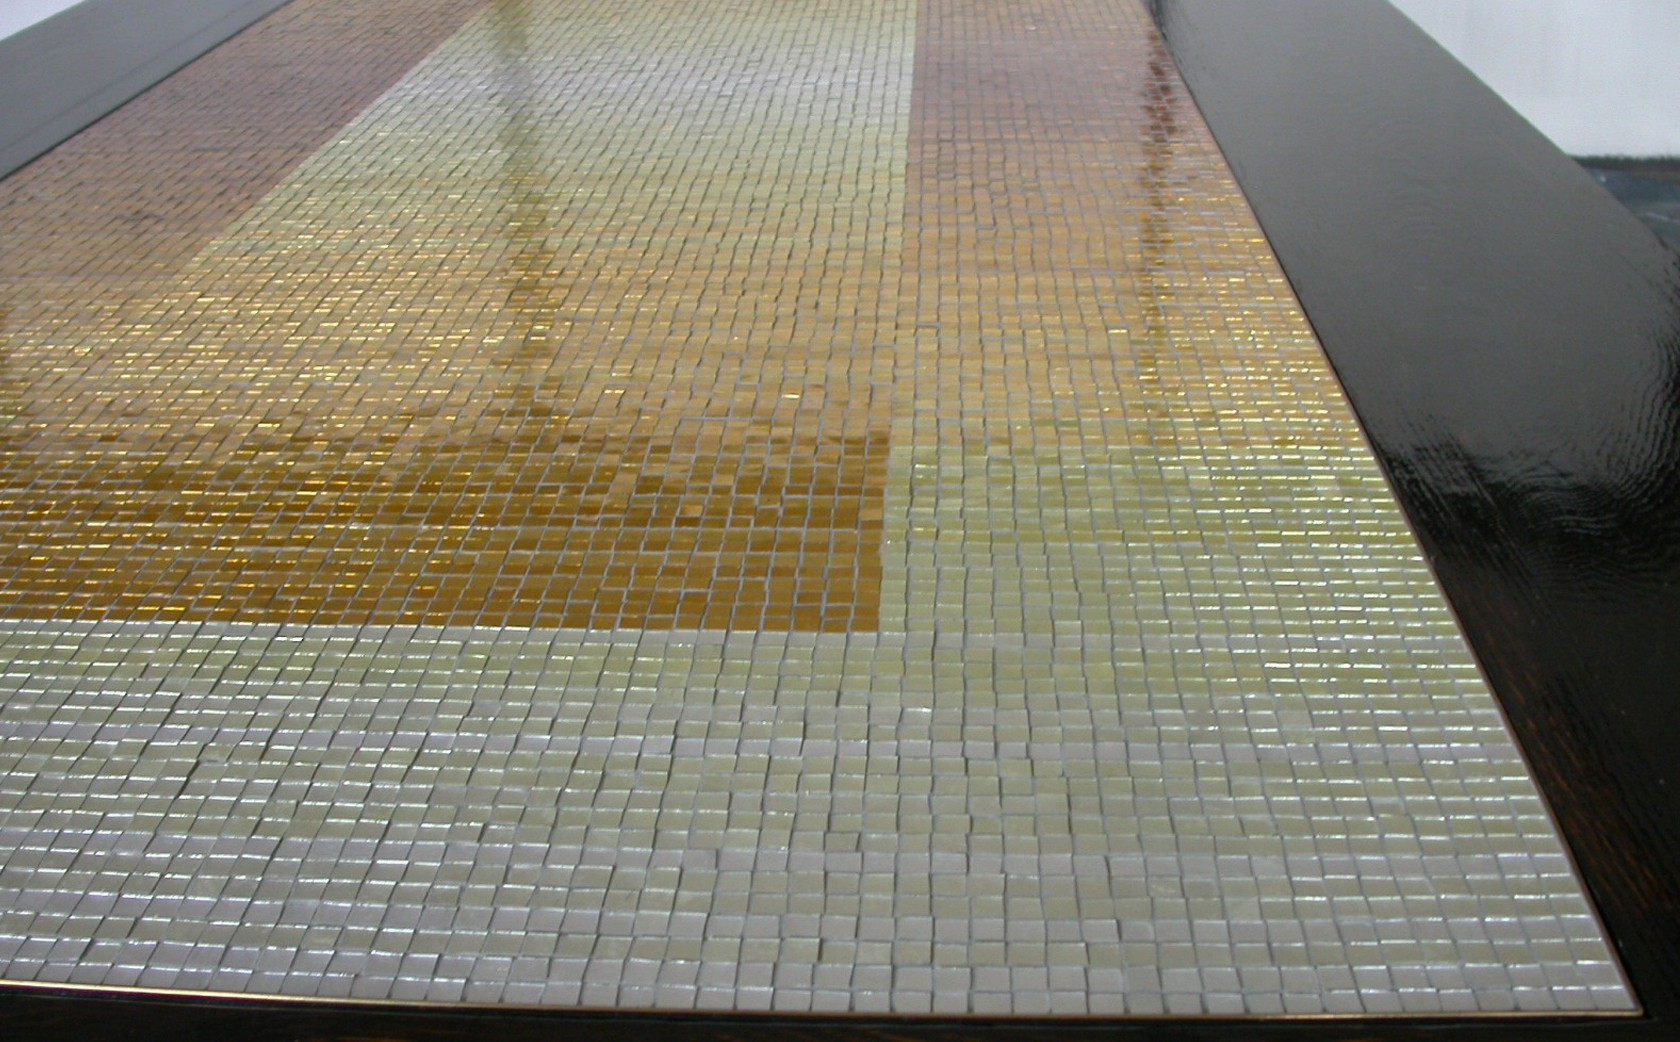 Gold Leaf hand produced Mosaic